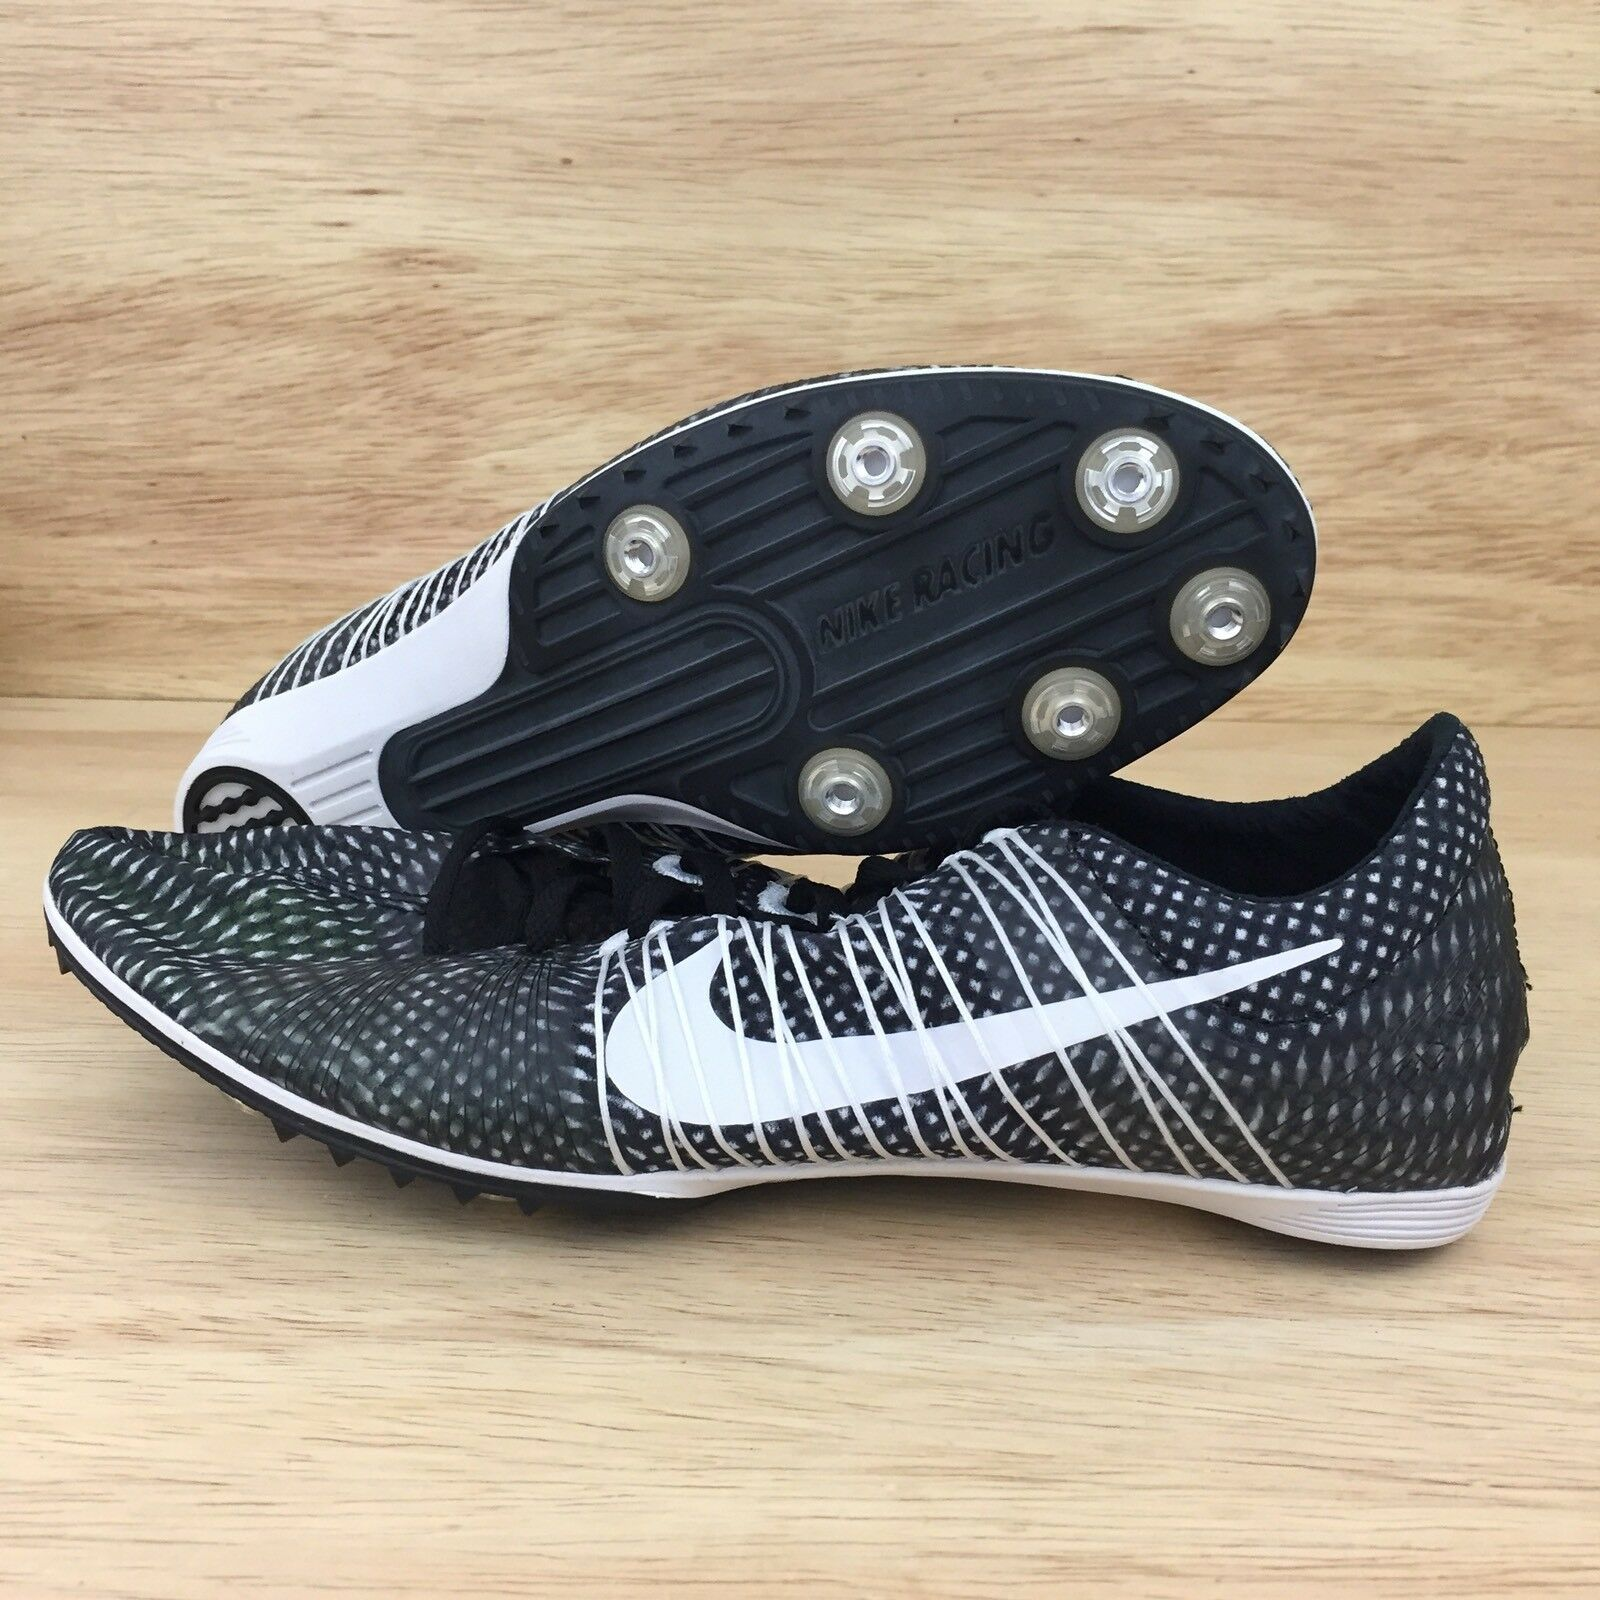 6be99288e5f0 Nike Zoom Victory 2 Track       Field Spikes Shoes Size 13 White Black  555365-001 02f691